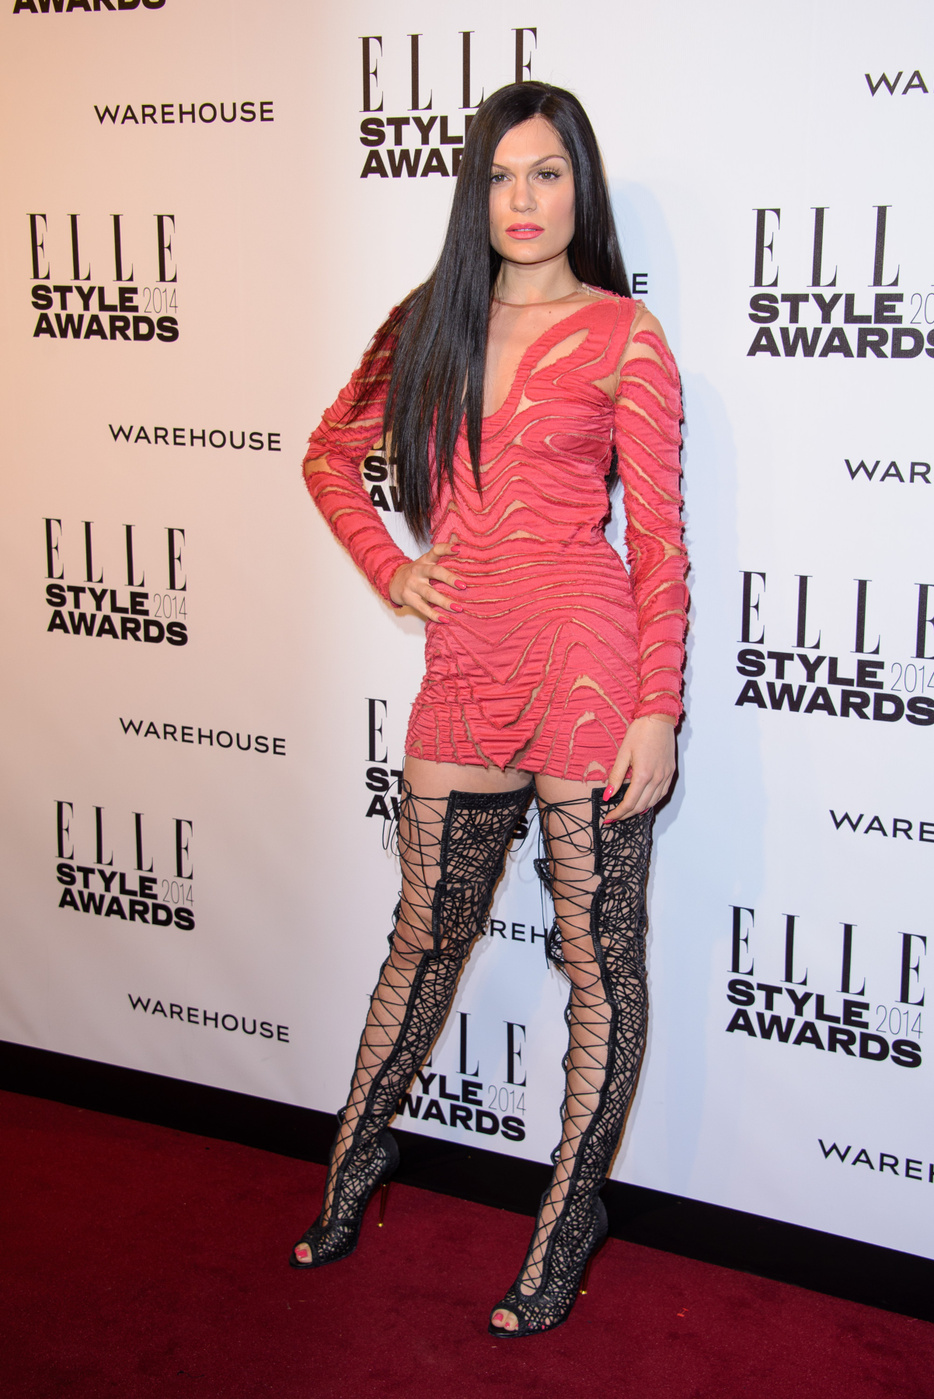 Jessie J attends  the Elle Style Awards 2014 at one Embankment in London